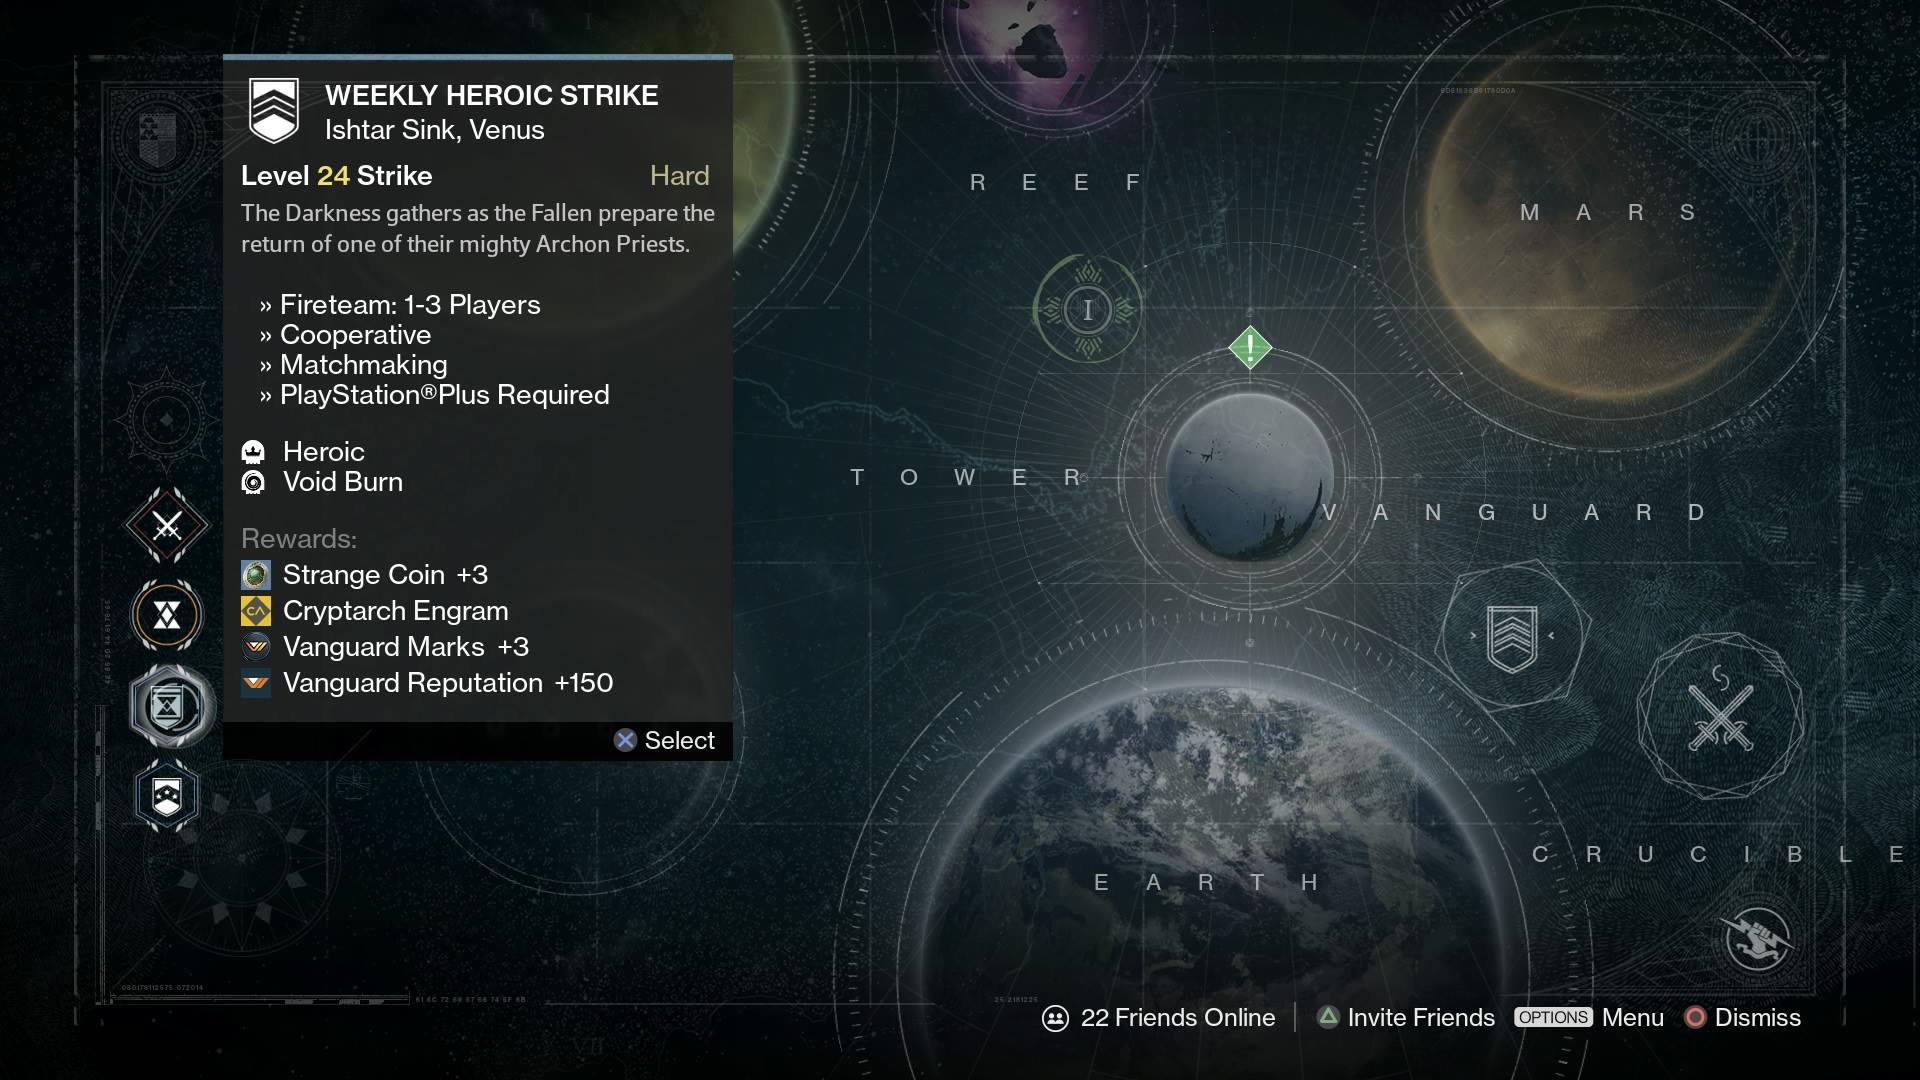 Destiny weekly reset for April 21: Heroic and Nightfall